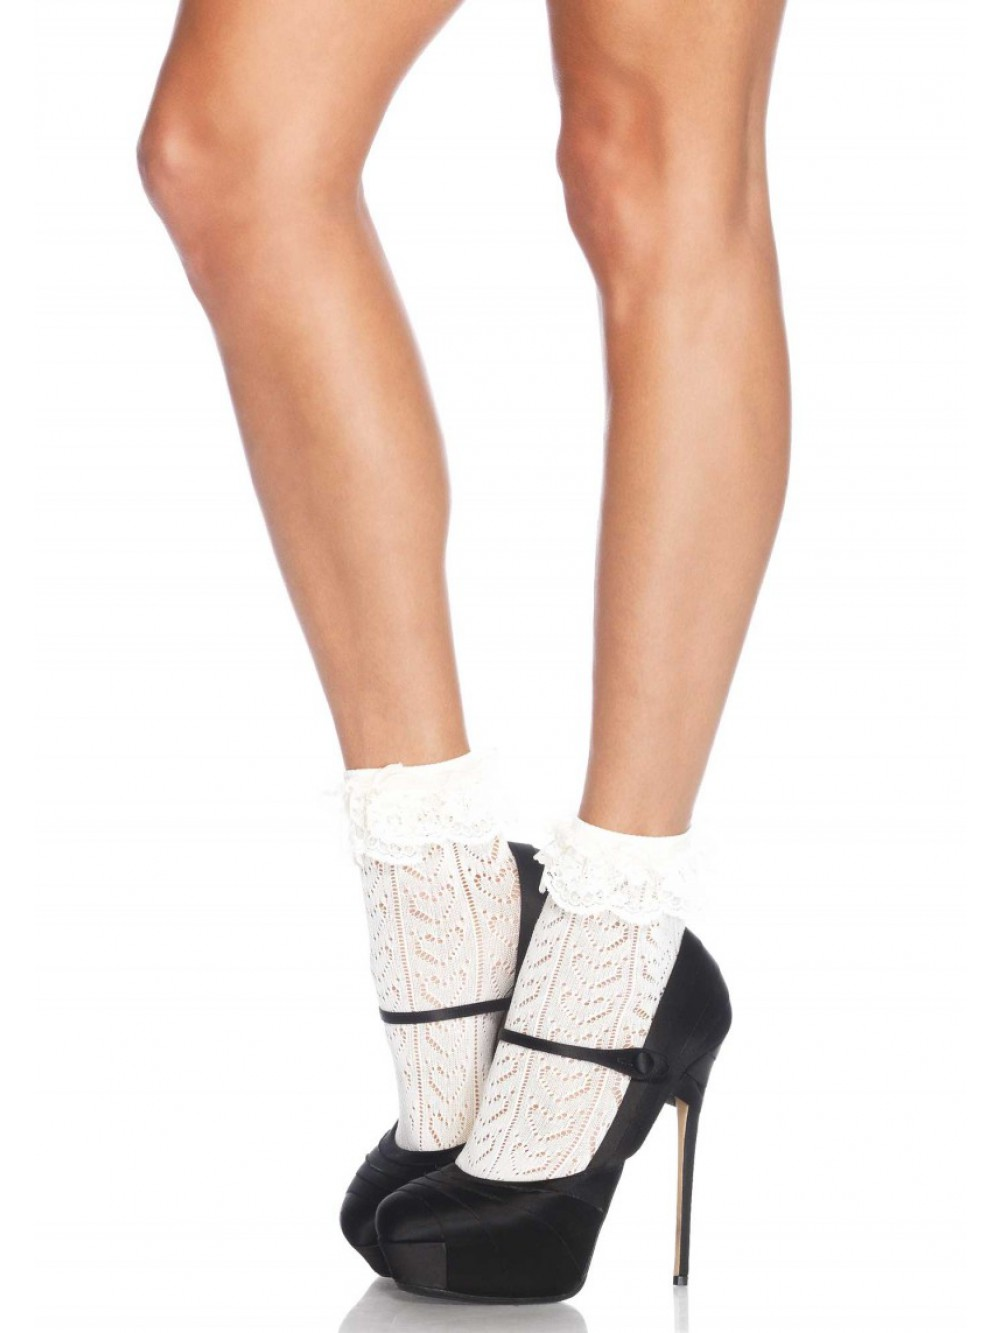 ANKLE HIGHS CROCHET HEART LACE TOP IVORY 0714718503561